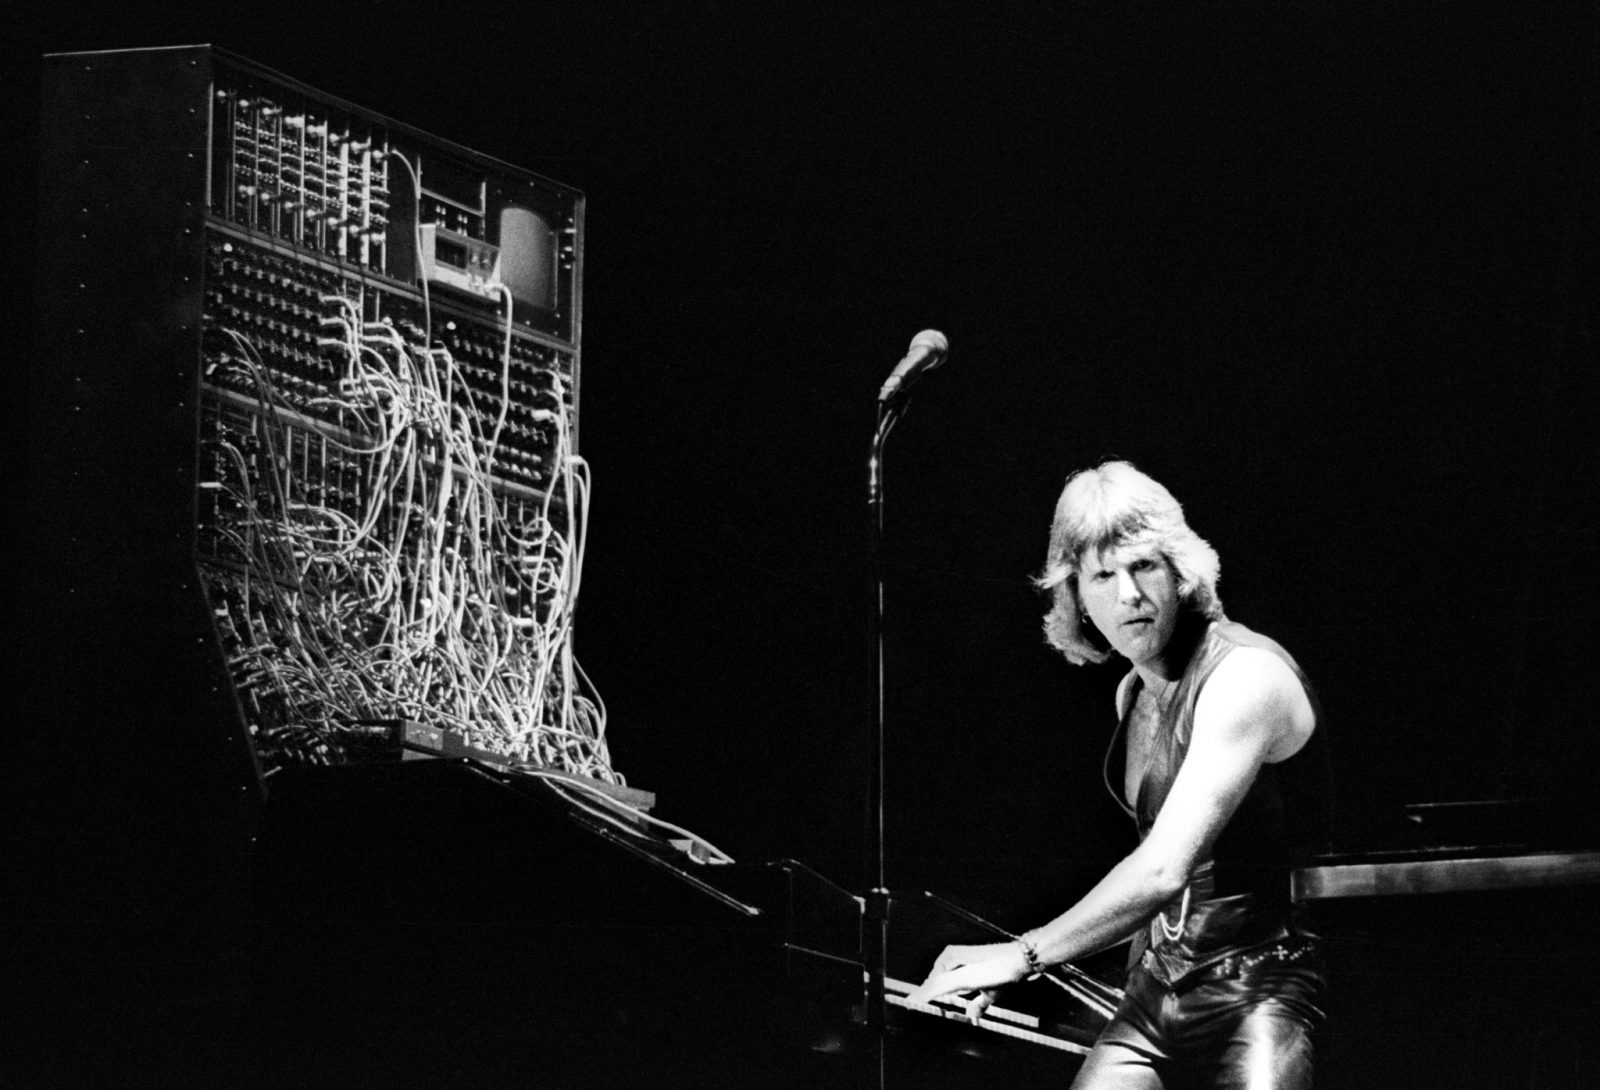 Keith-Emerson-Profile-Article-Cover-Image